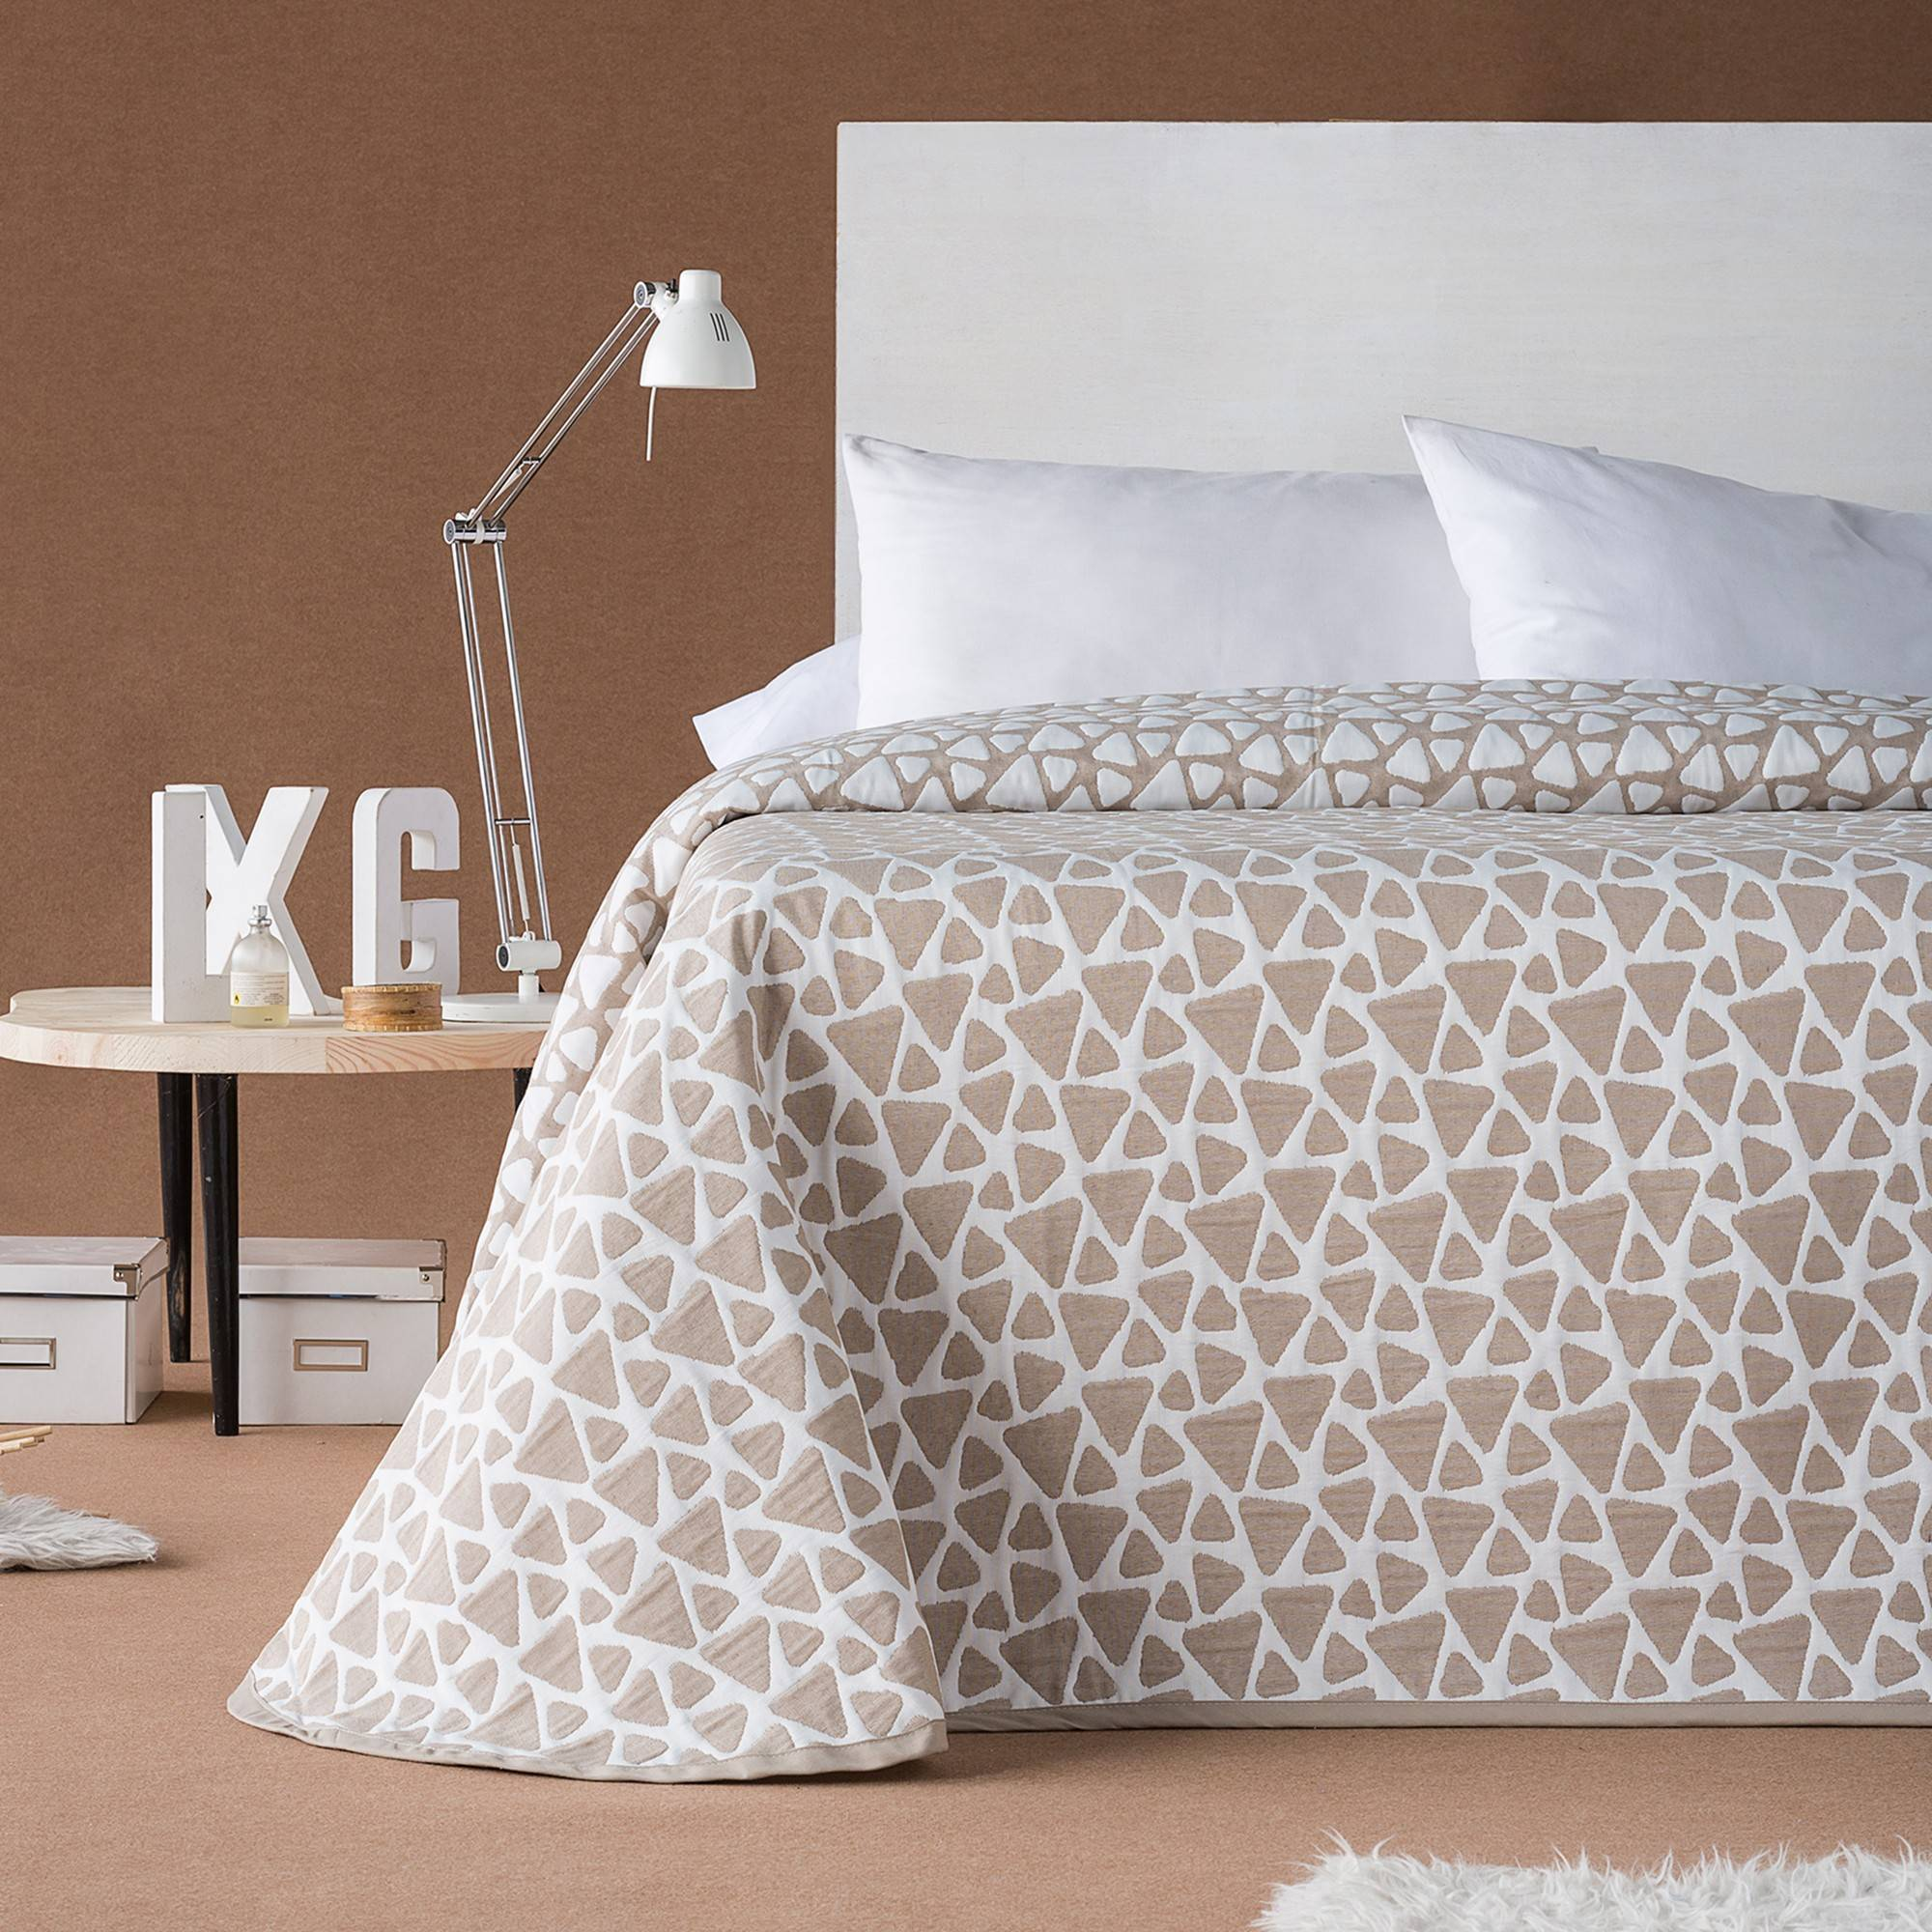 Couvre-lit jacquard Onix - Taupe - Blancheporte